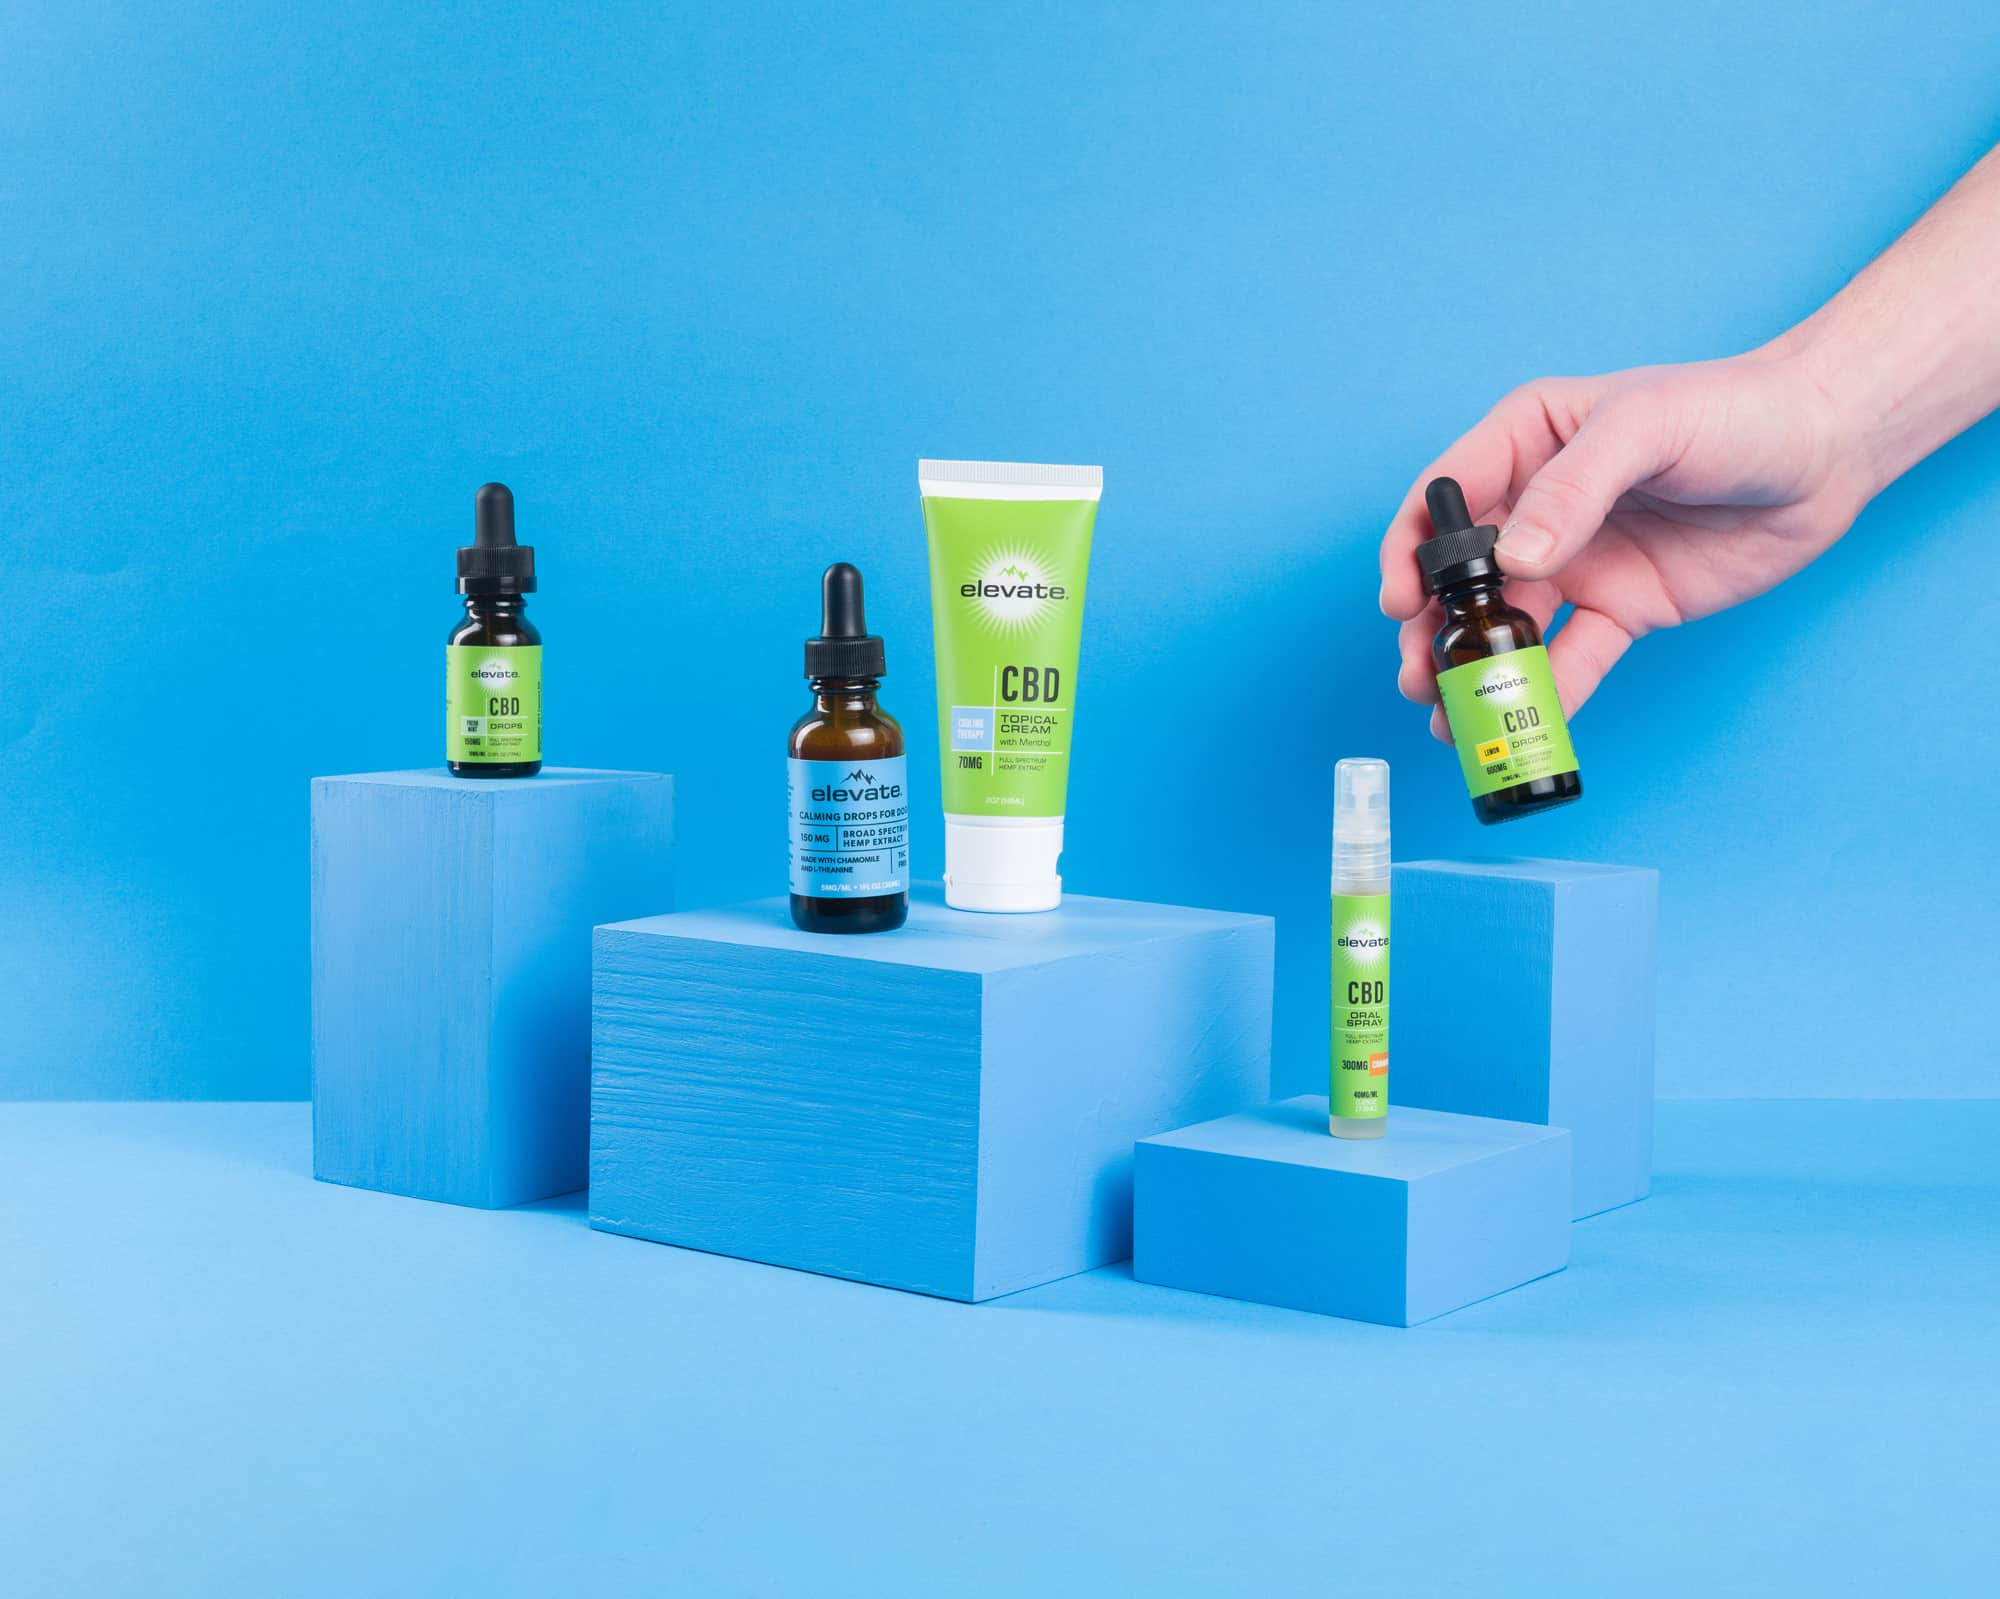 Product photograpy and prop styling for Elevate CBD's quiz